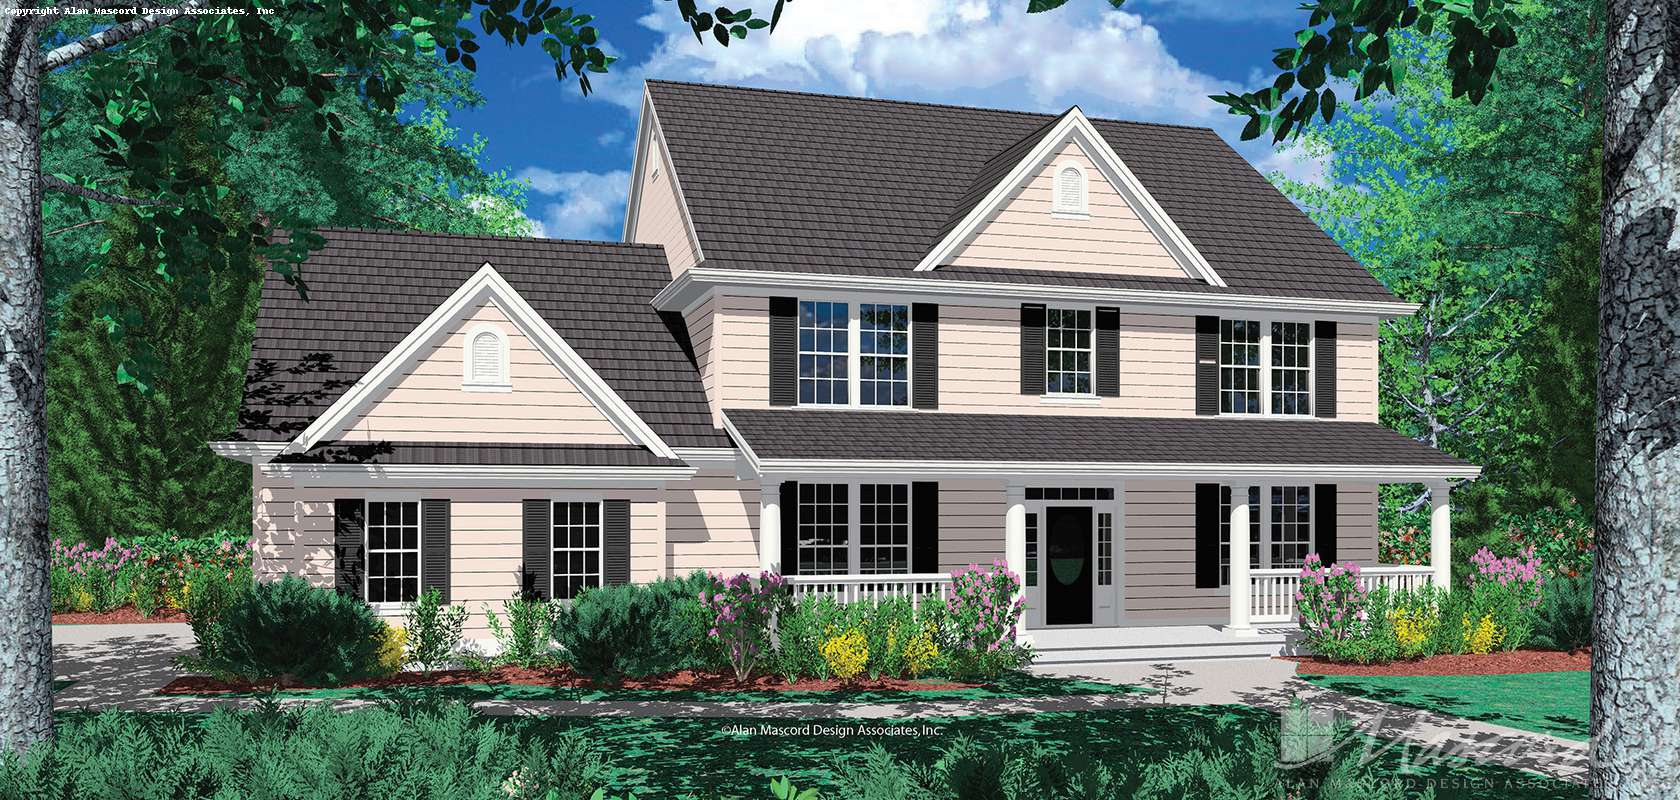 Mascord House Plan 2322F: The Cameron